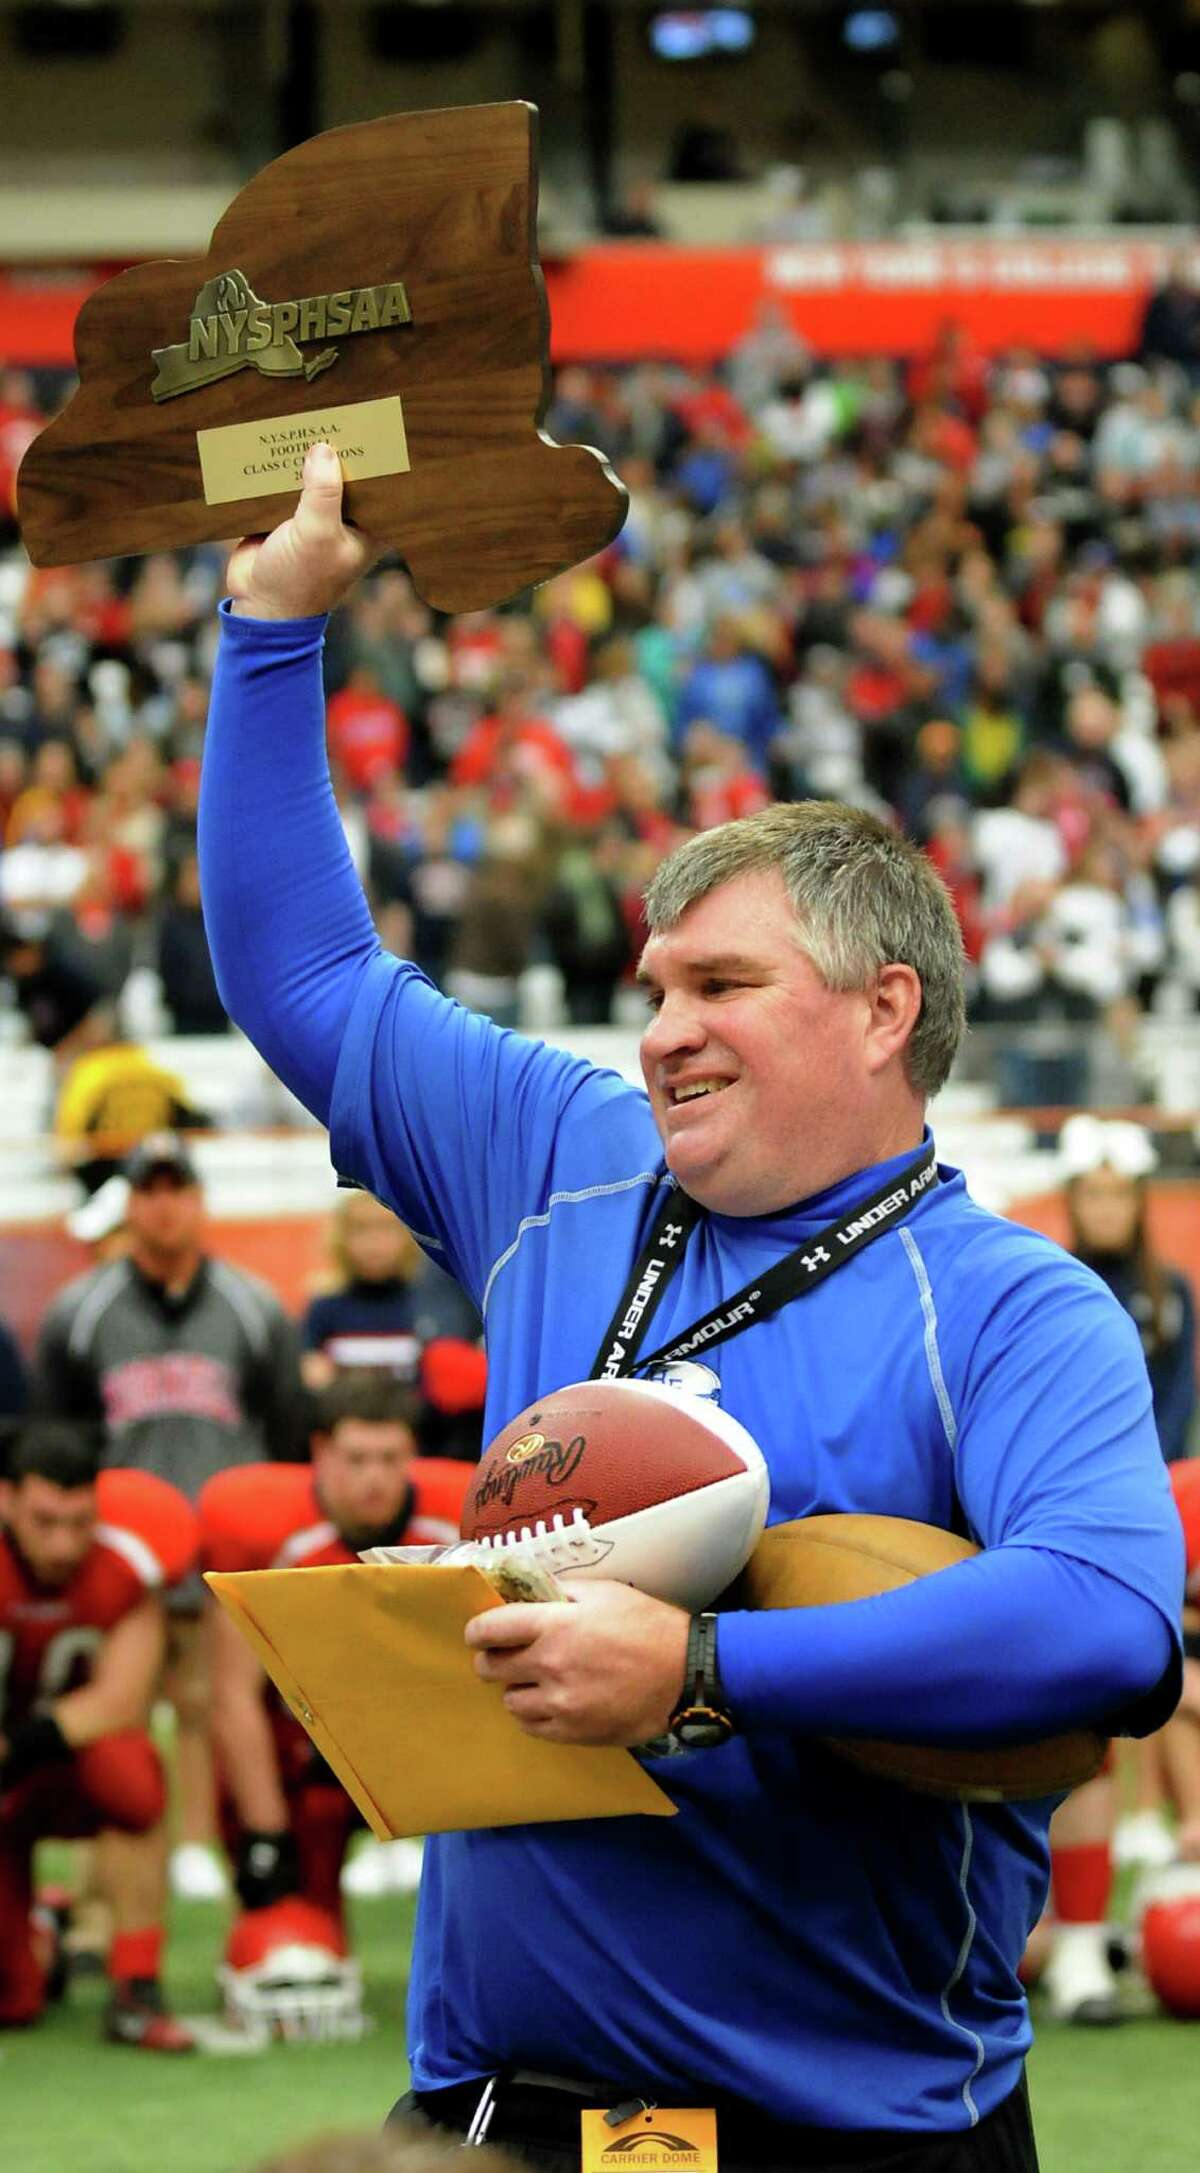 Hoosick Falls' coach Ron Jones holds up the state title when his team wins 34-21 over Hornell in the Class C football state final on Saturday, Nov. 24, 2012, at the Carrier Dome in Syracuse, N.Y. (Cindy Schultz / Times Union)